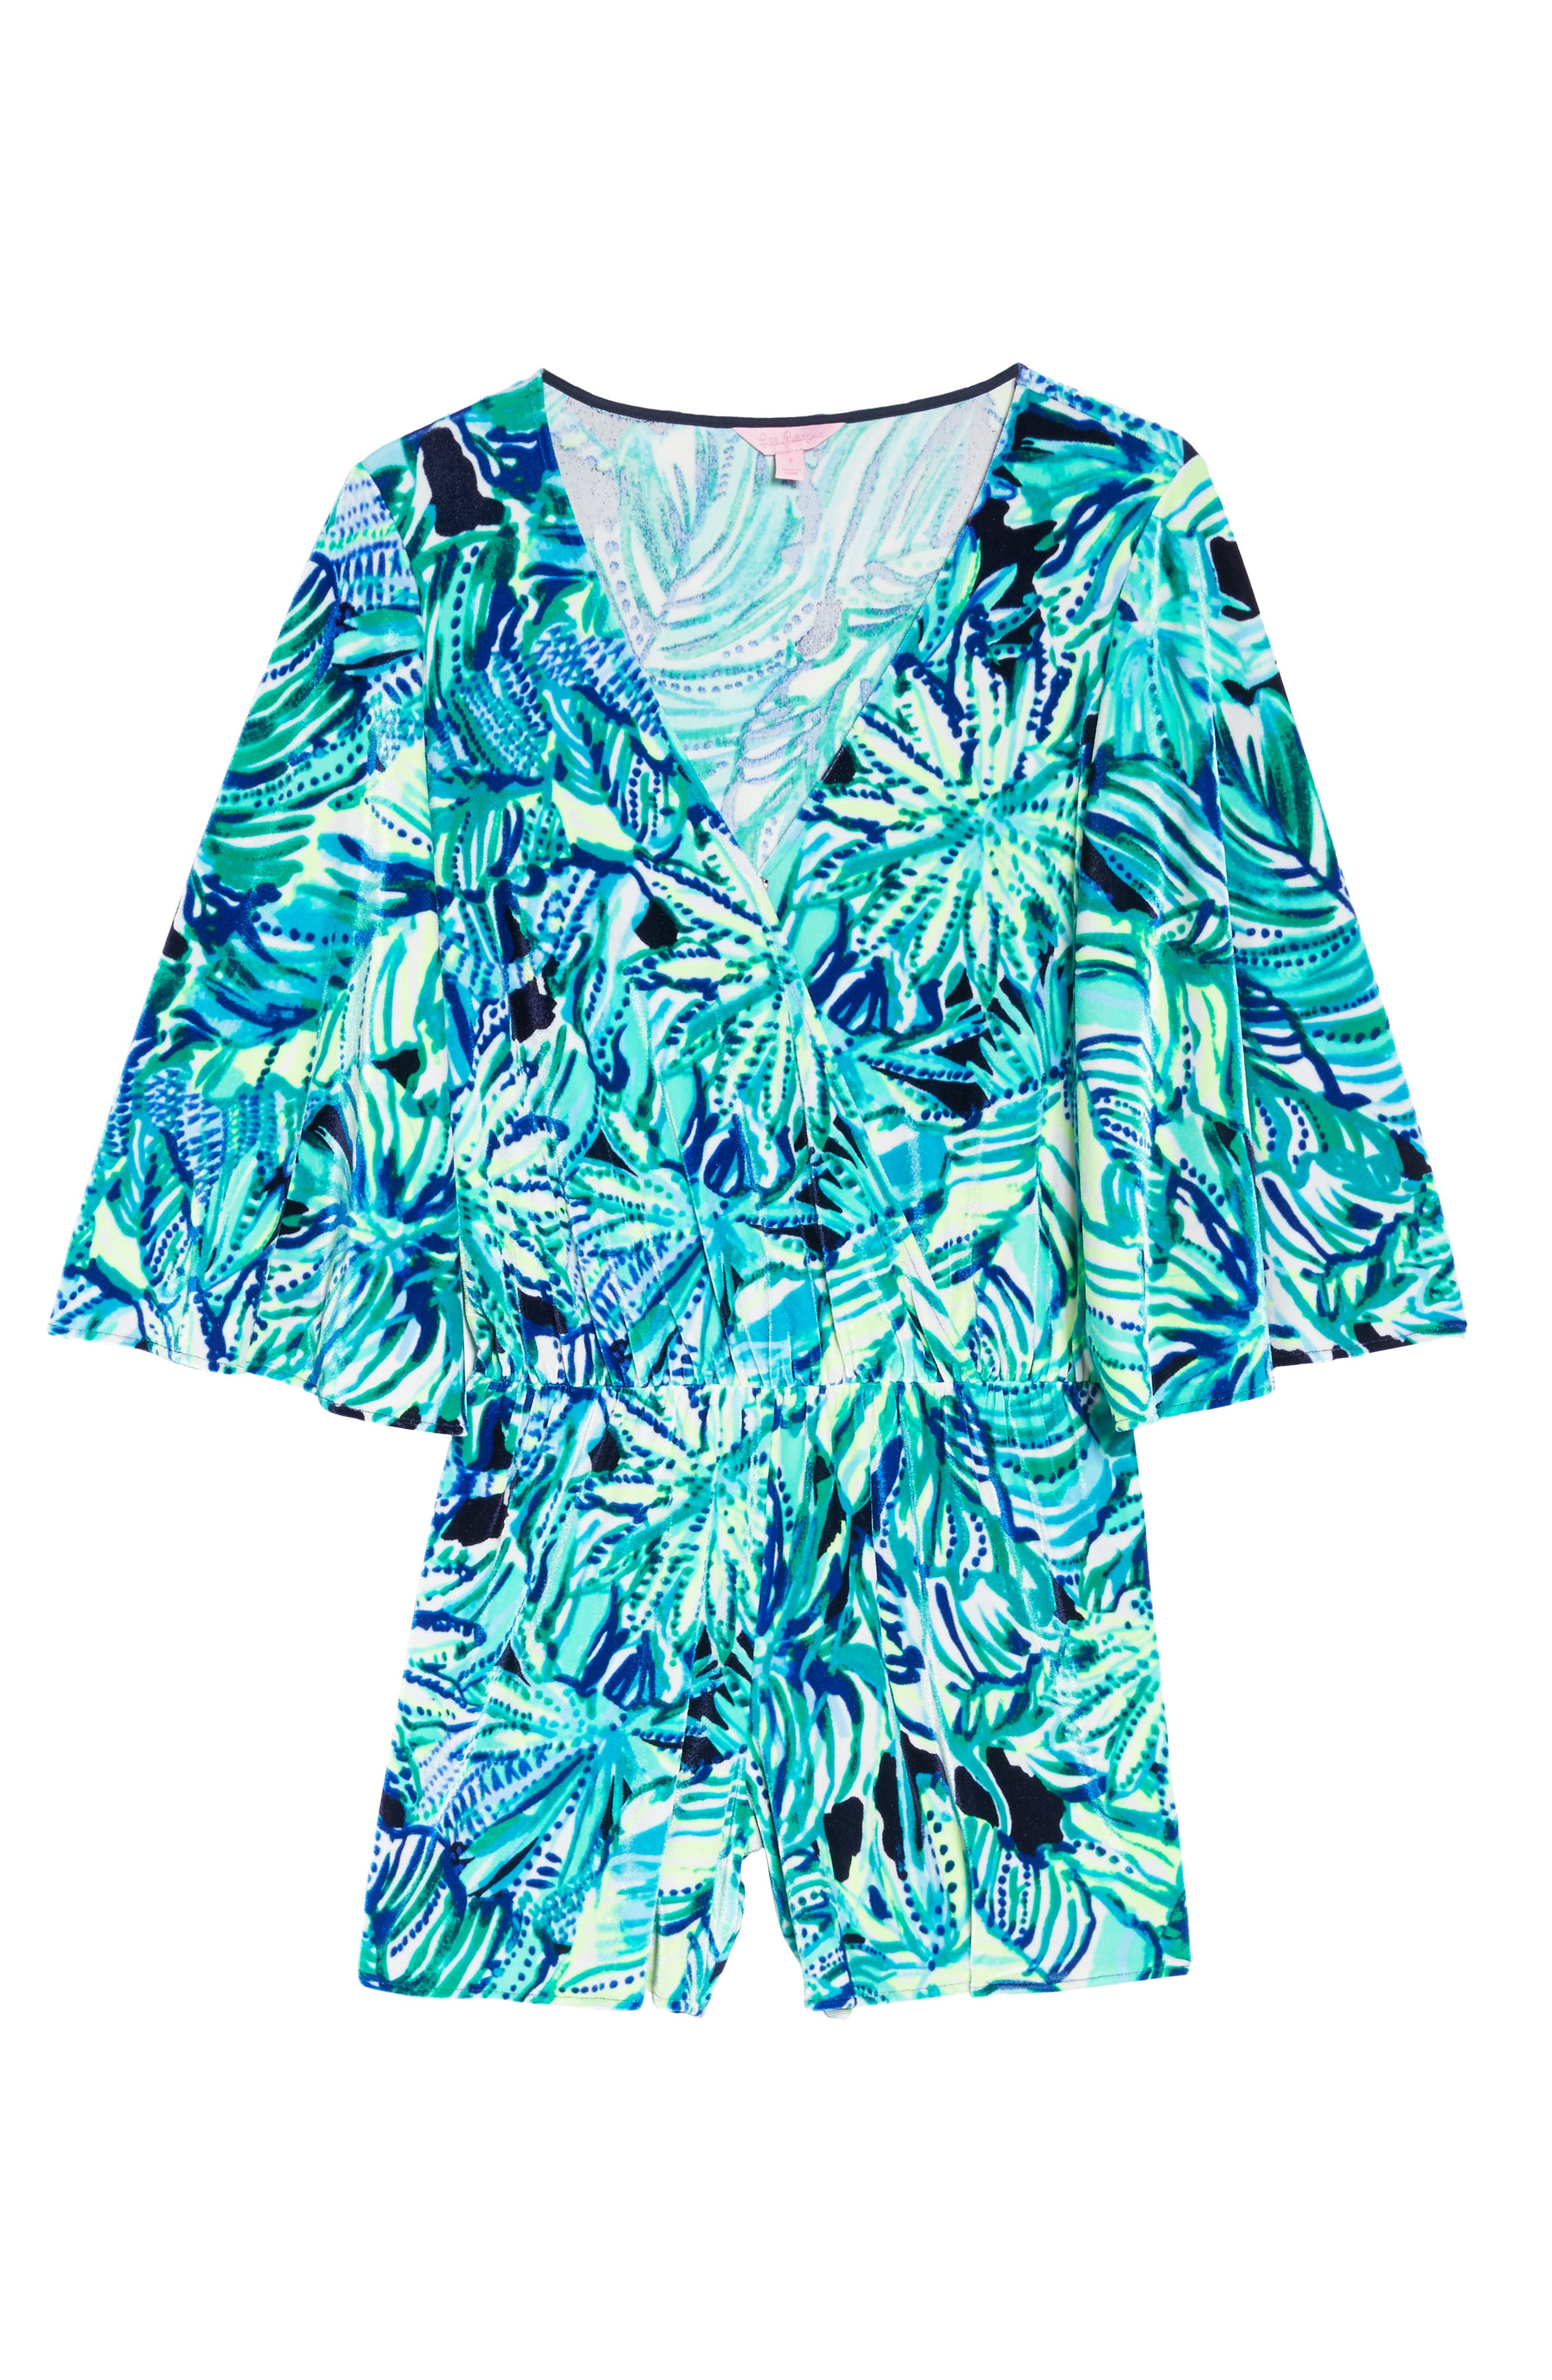 Lily Pulitzer<sup>®</sup> Viviana Romper,                             Alternate thumbnail 6, color,                             440